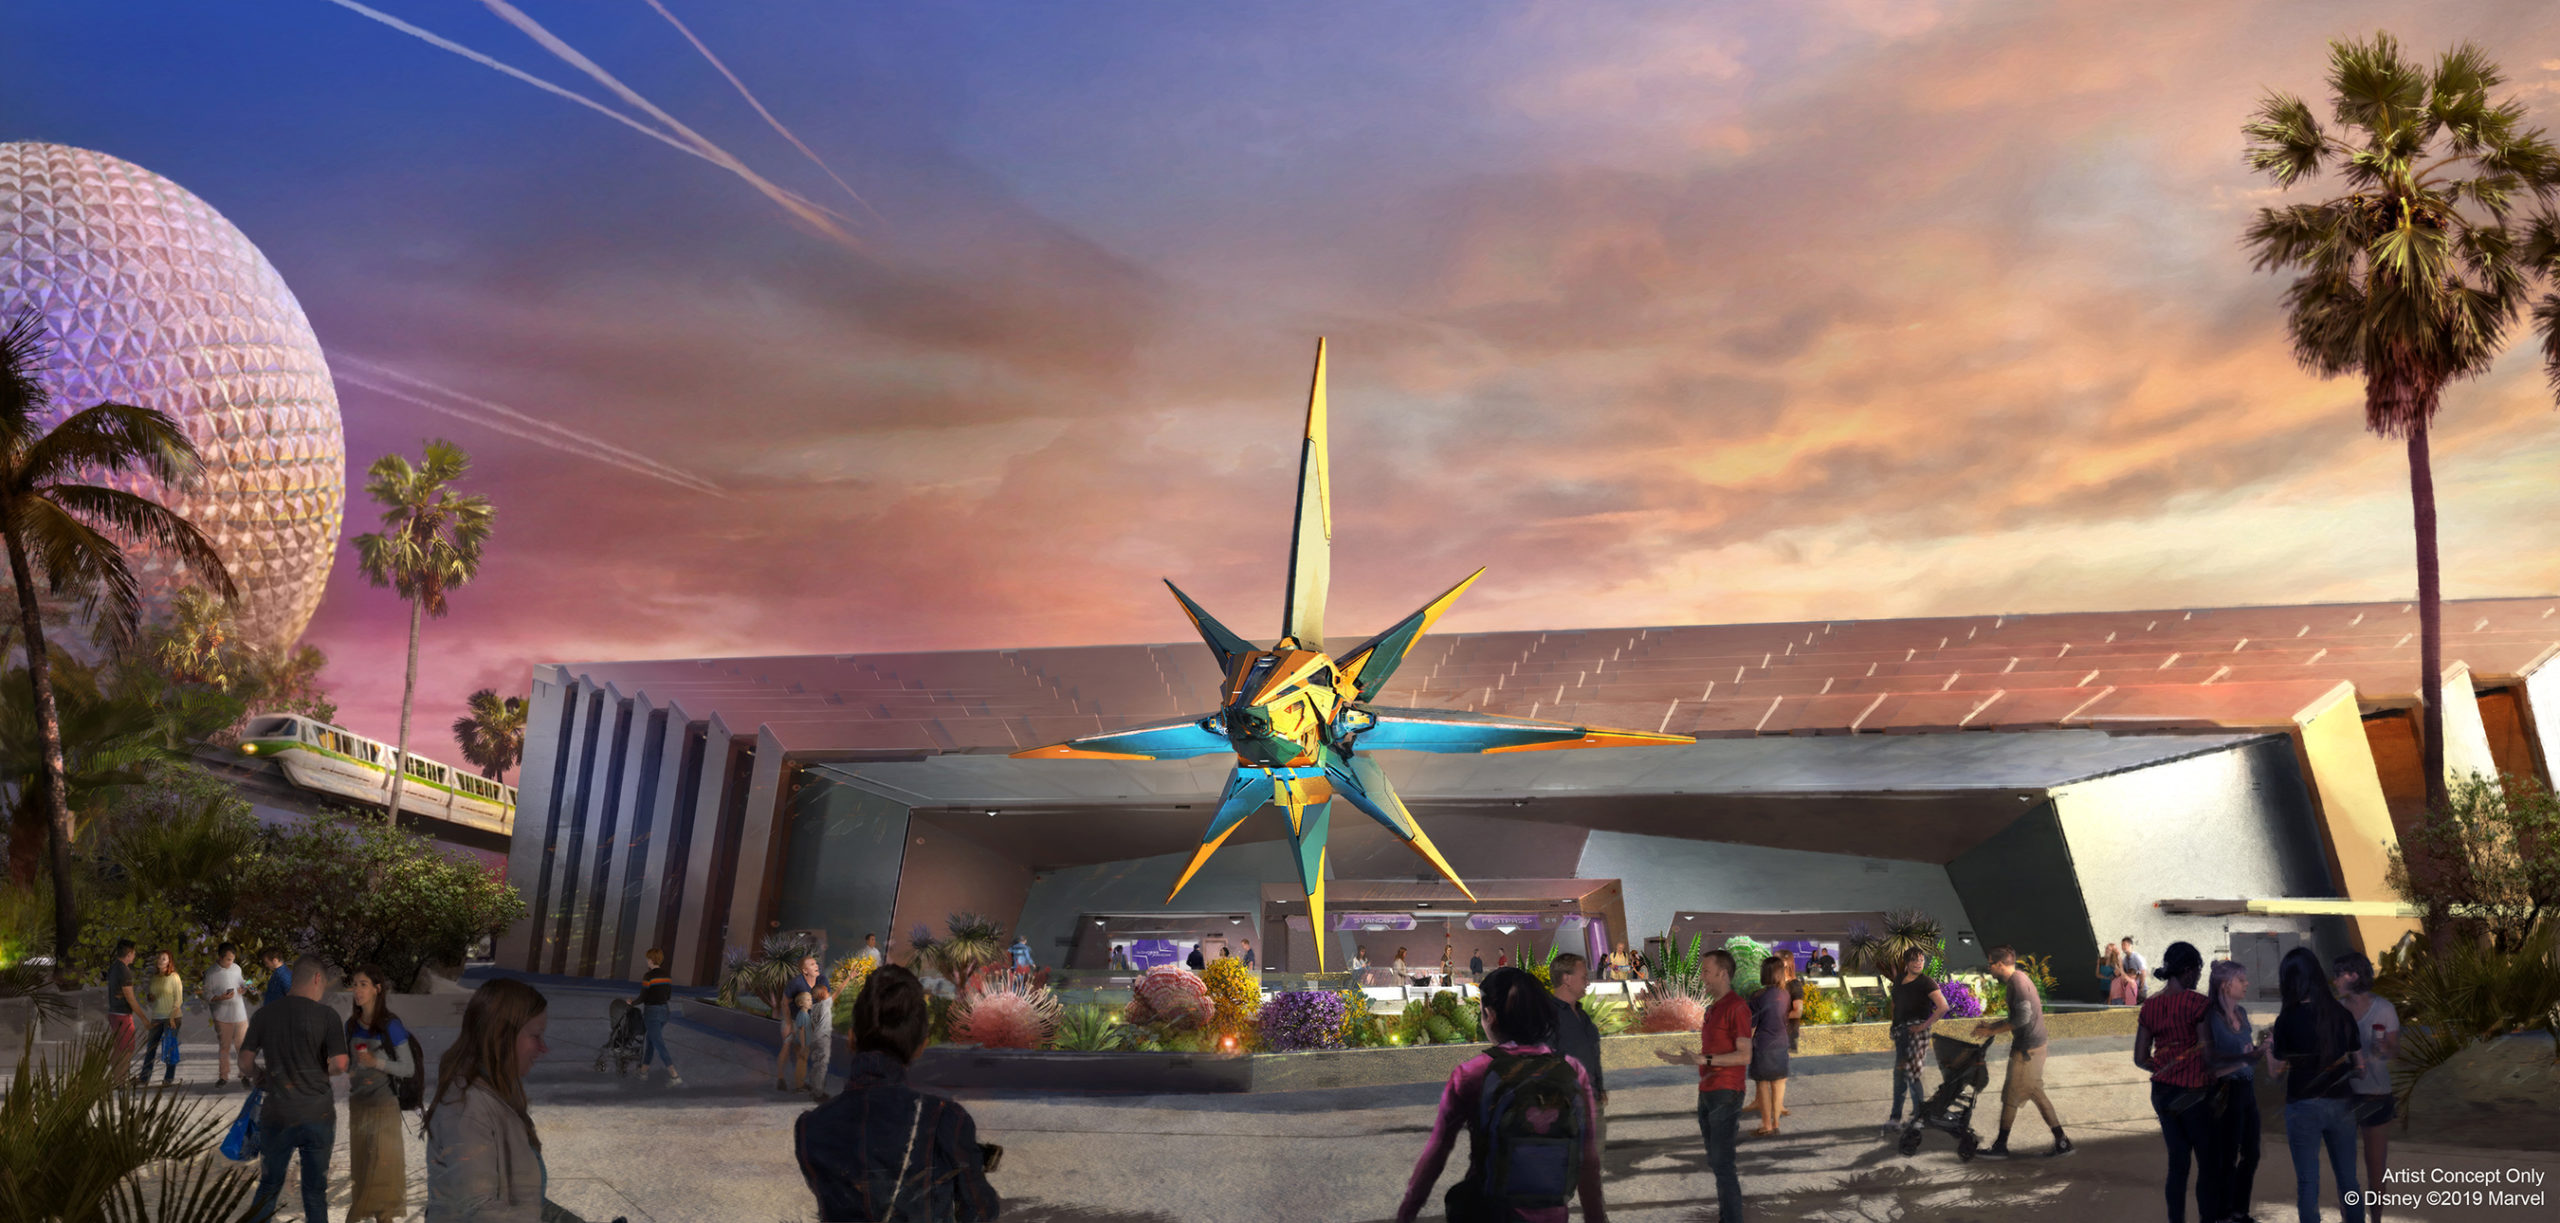 epcot, walt disney world, 2021